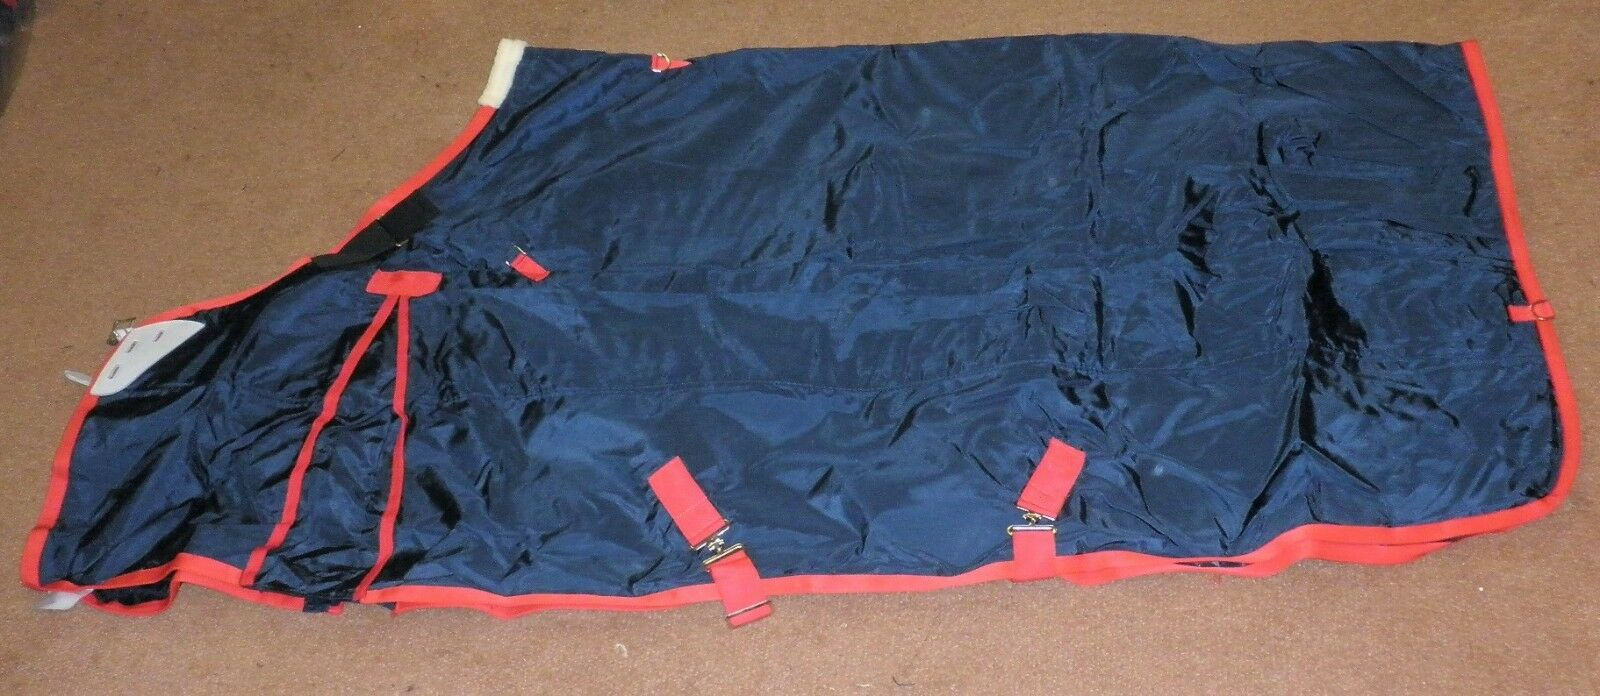 Everest 350g Heavy Turnout Rug With  Fully Adjustable Shoulder In Various Sizes